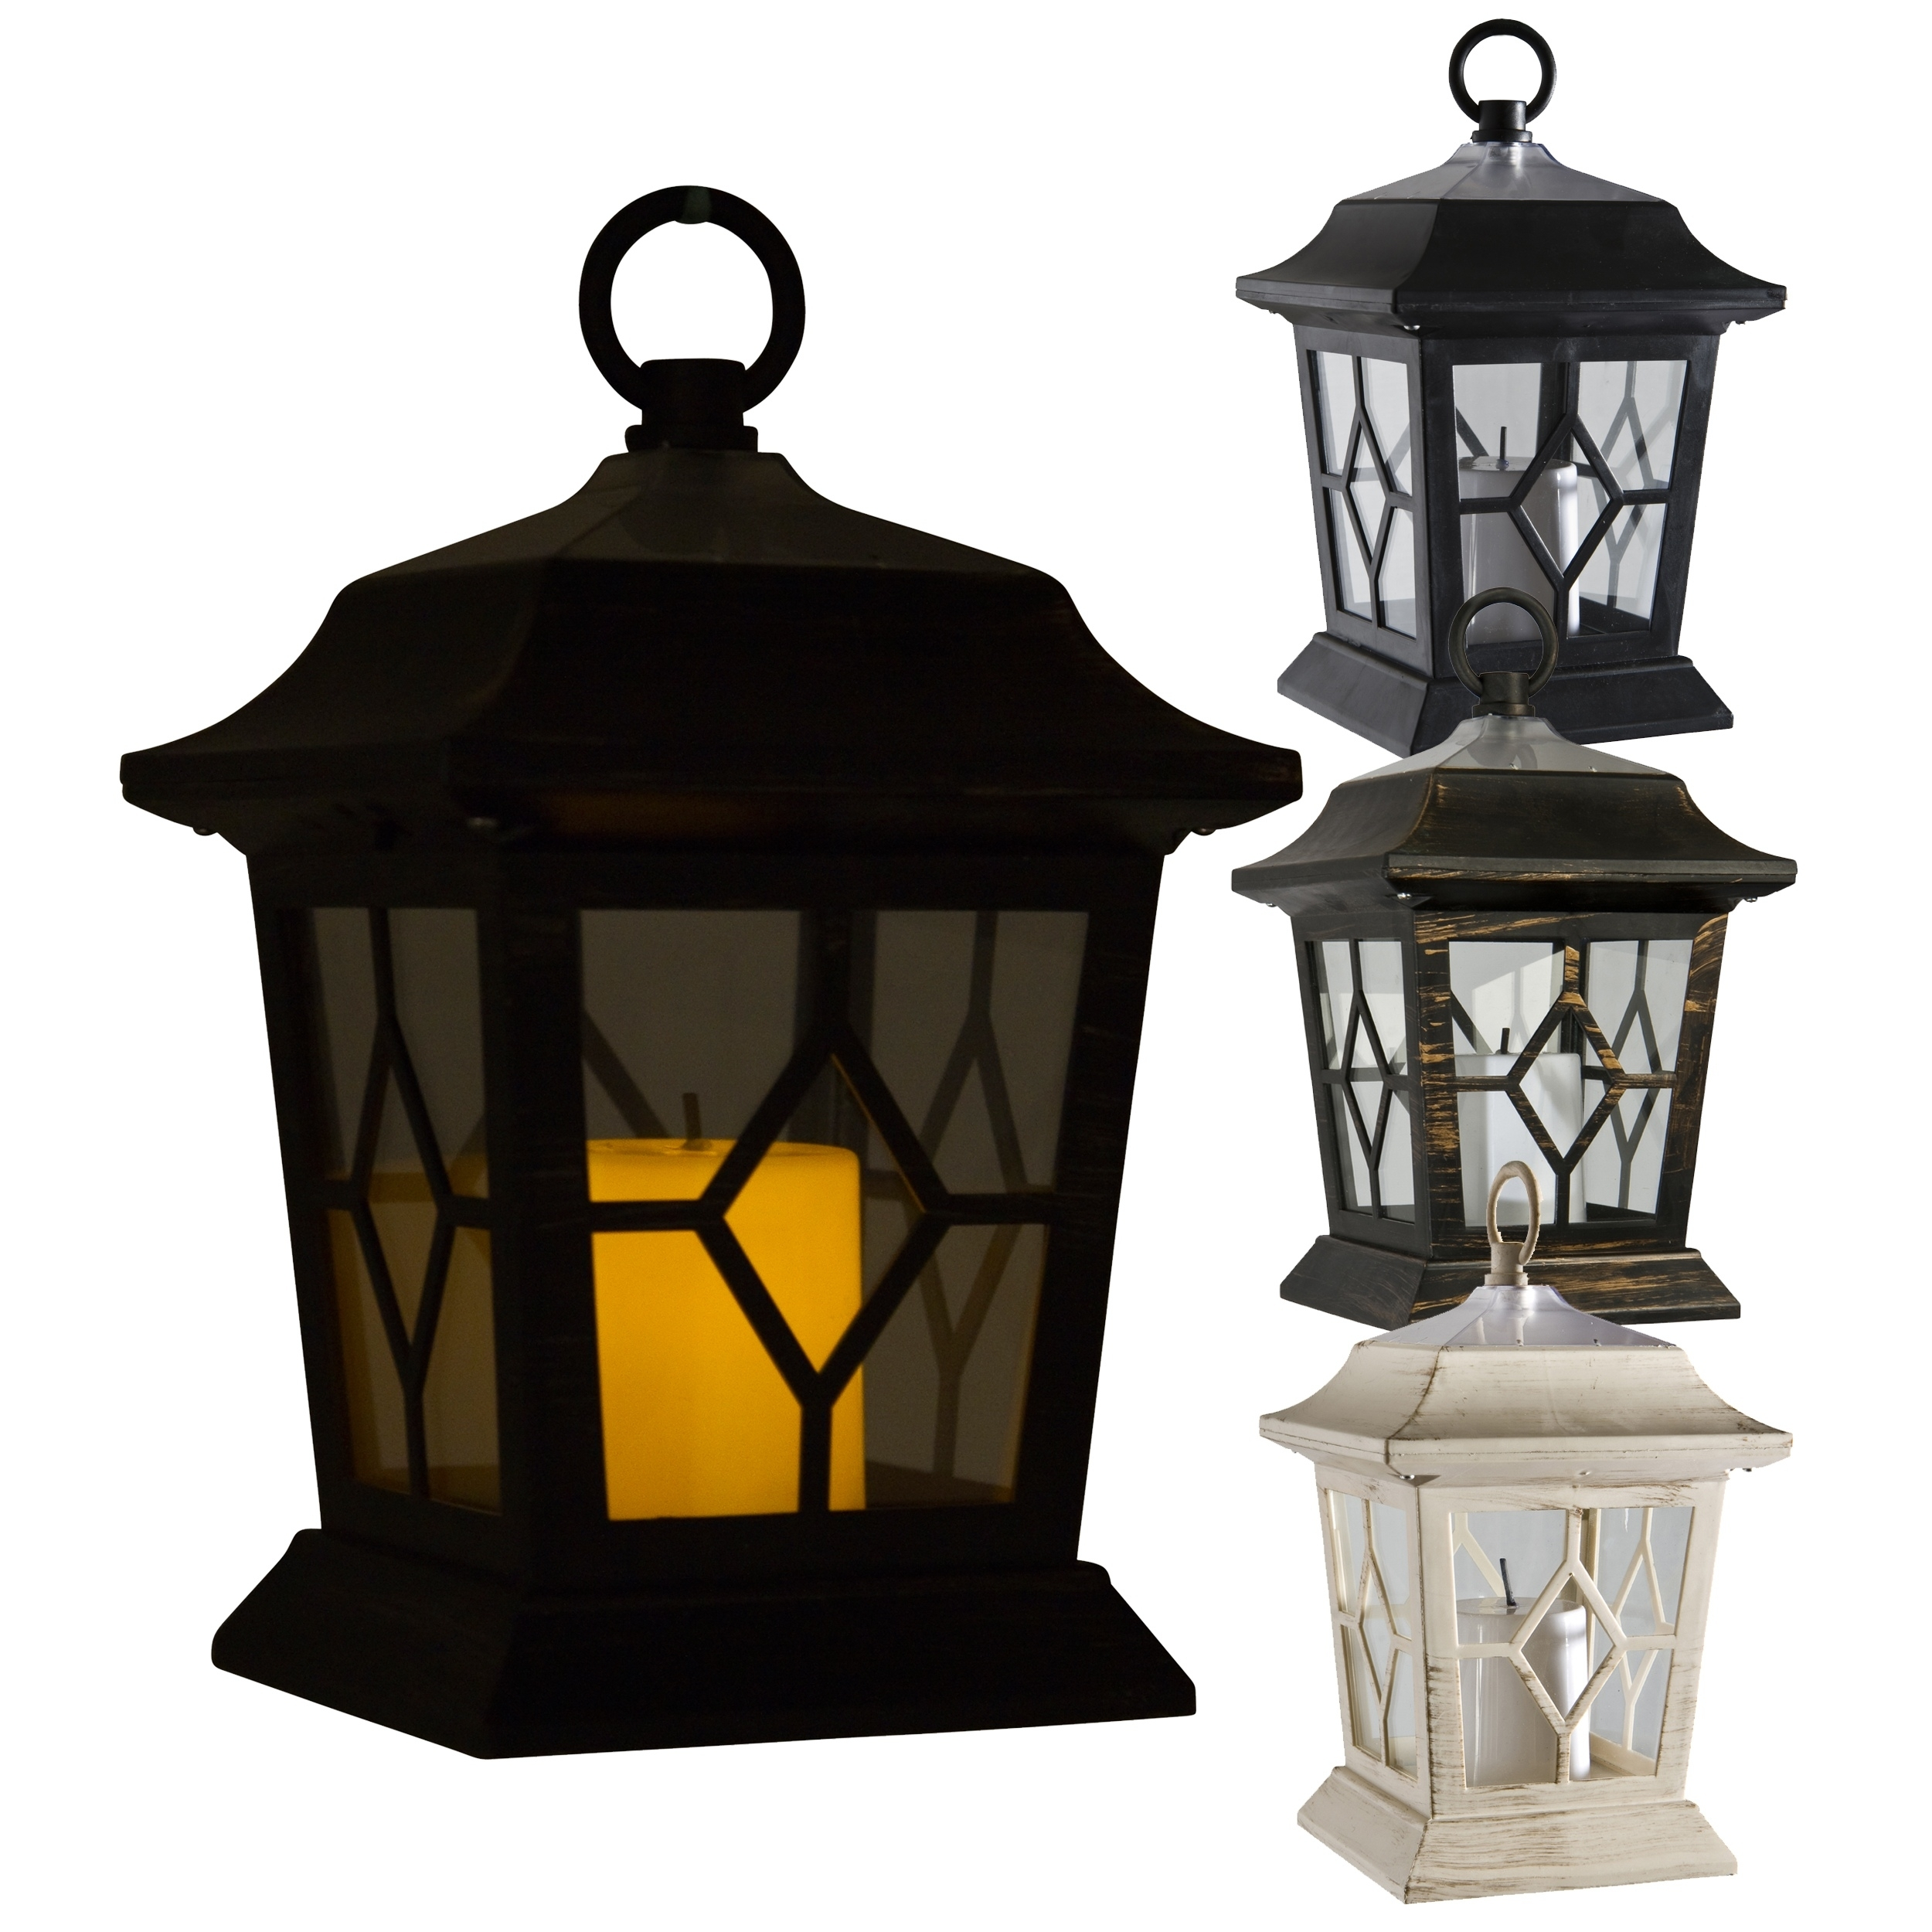 Led Solar Powered Victorian Candle Lantern Lamp Light Garden Mood pertaining to Outdoor Lanterns With Led Candles (Image 10 of 20)